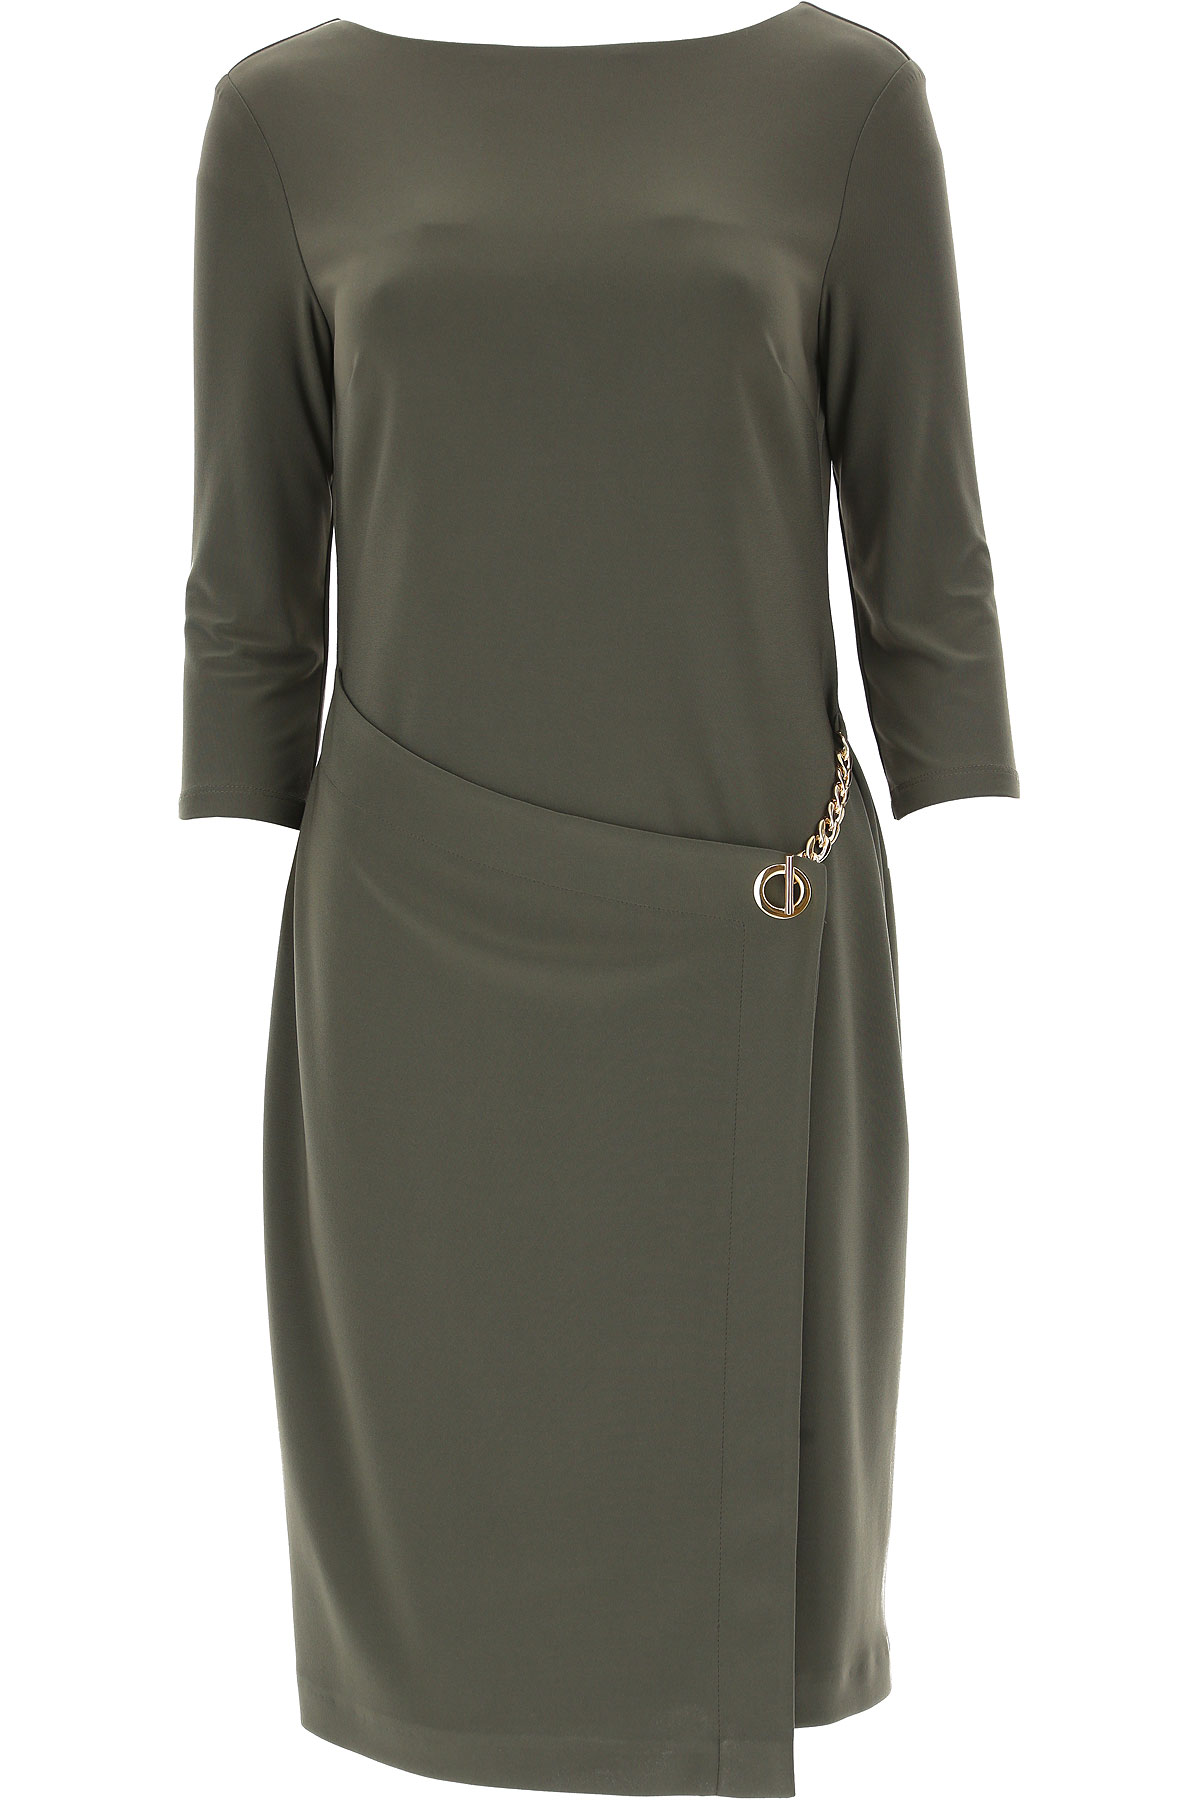 Image of Joseph Ribkoff Dress for Women, Evening Cocktail Party, Avocado Green, polyester, 2017, 10 12 8